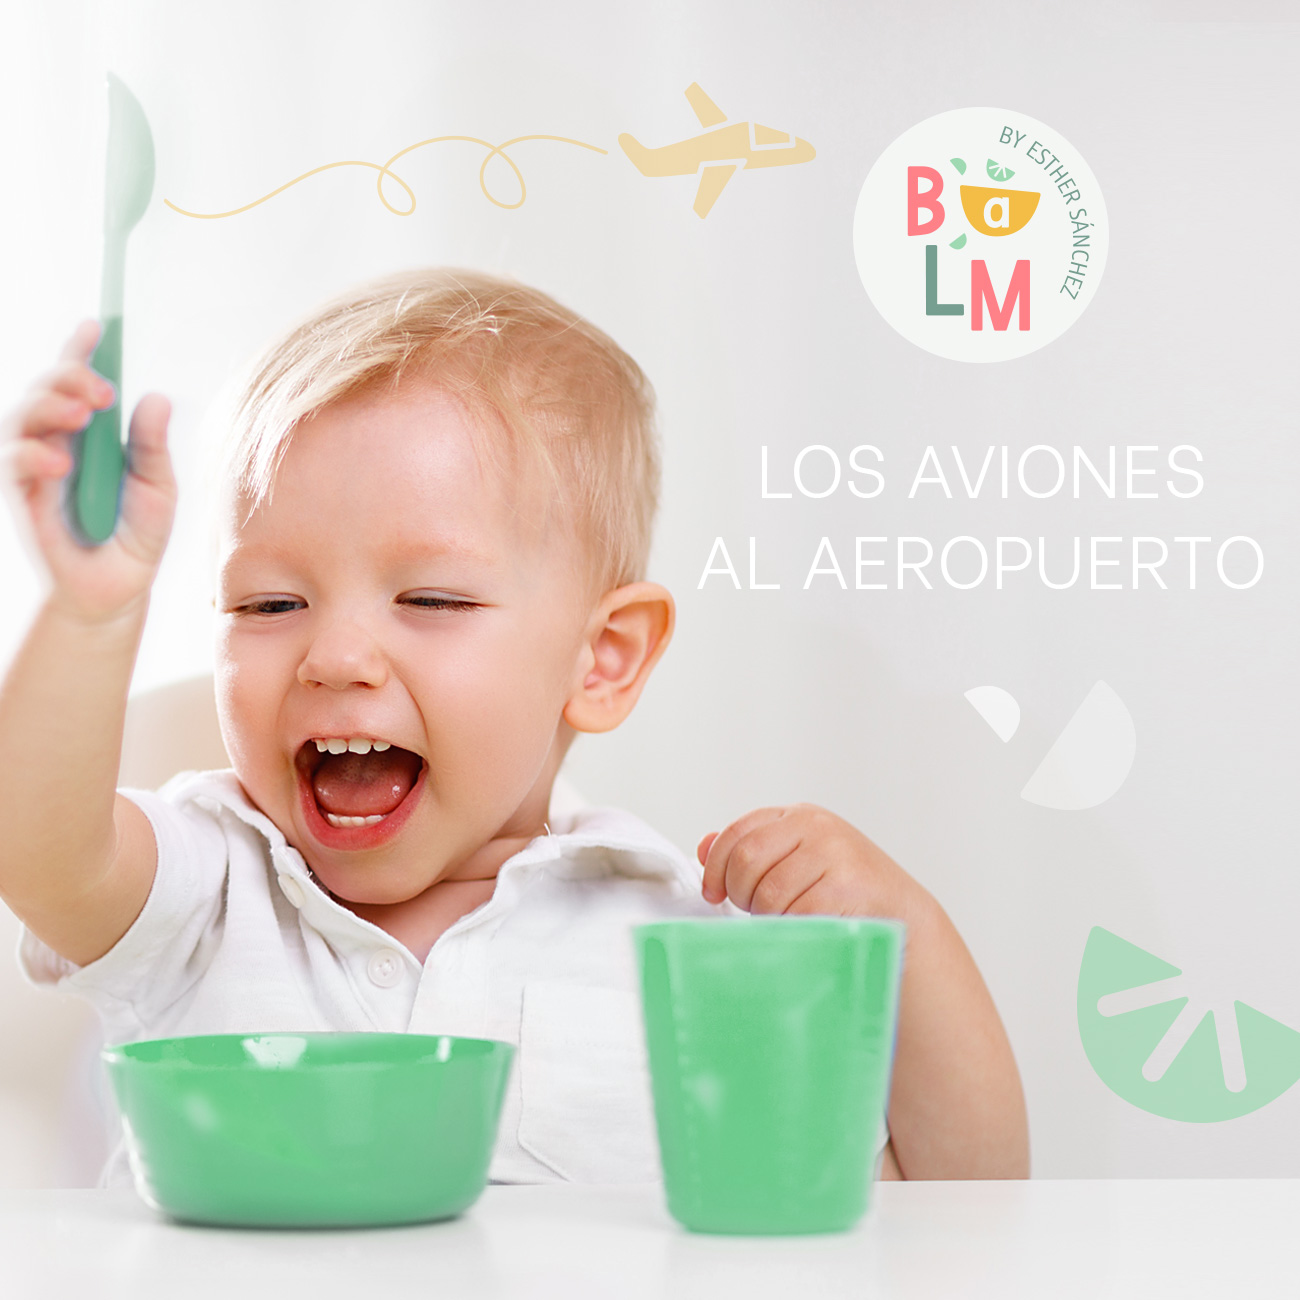 Alimentación complementaria- blw - baby led weaning